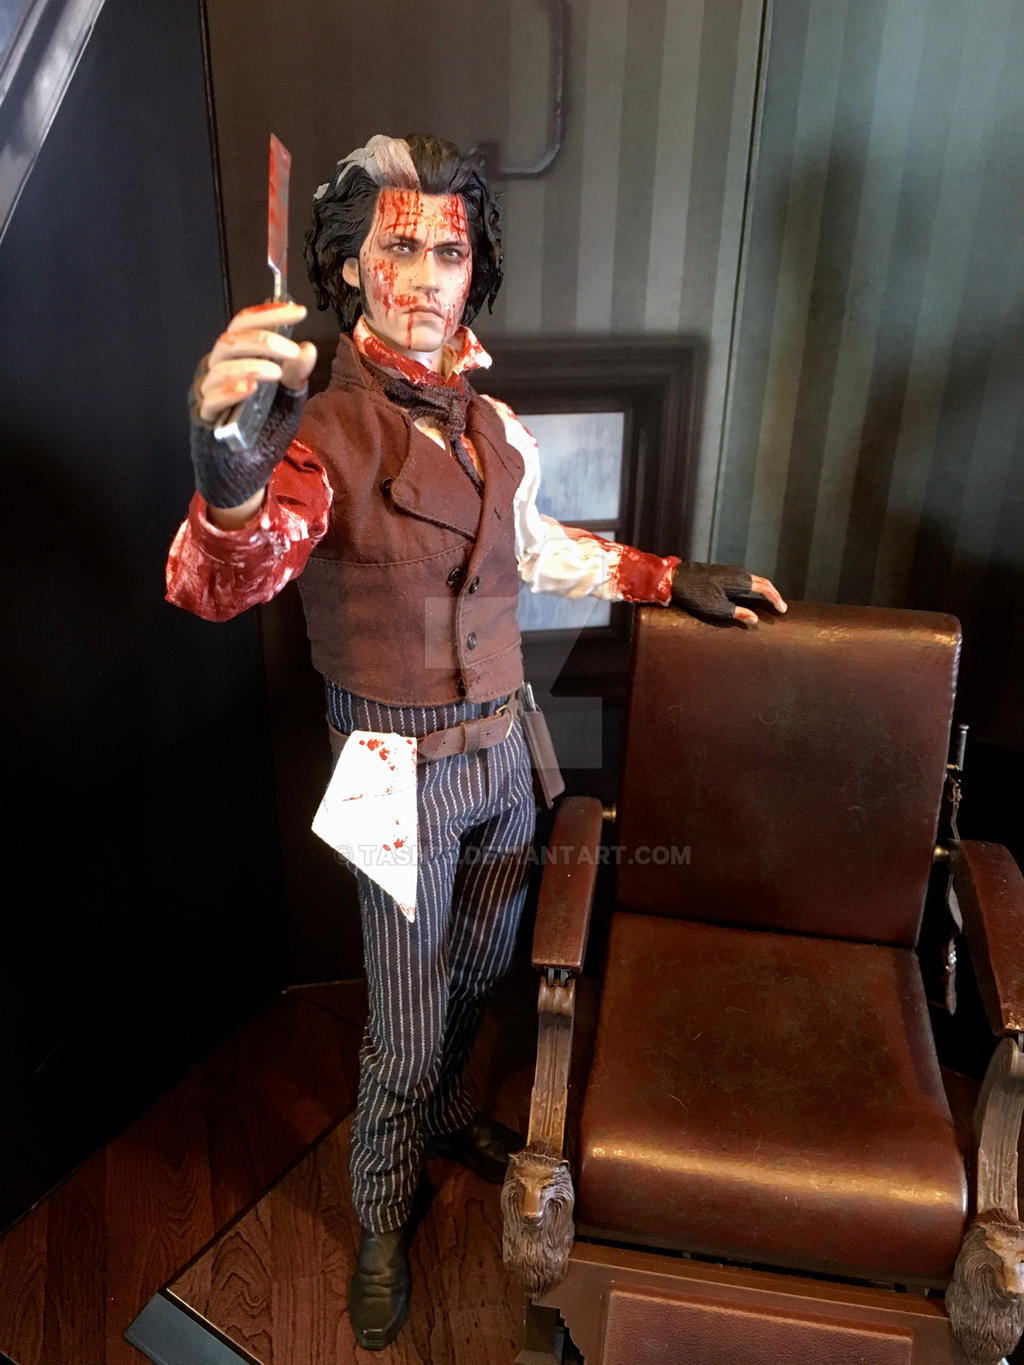 1 6 Hot Toys Sweeney Todd Customised By Tash75 On Deviantart